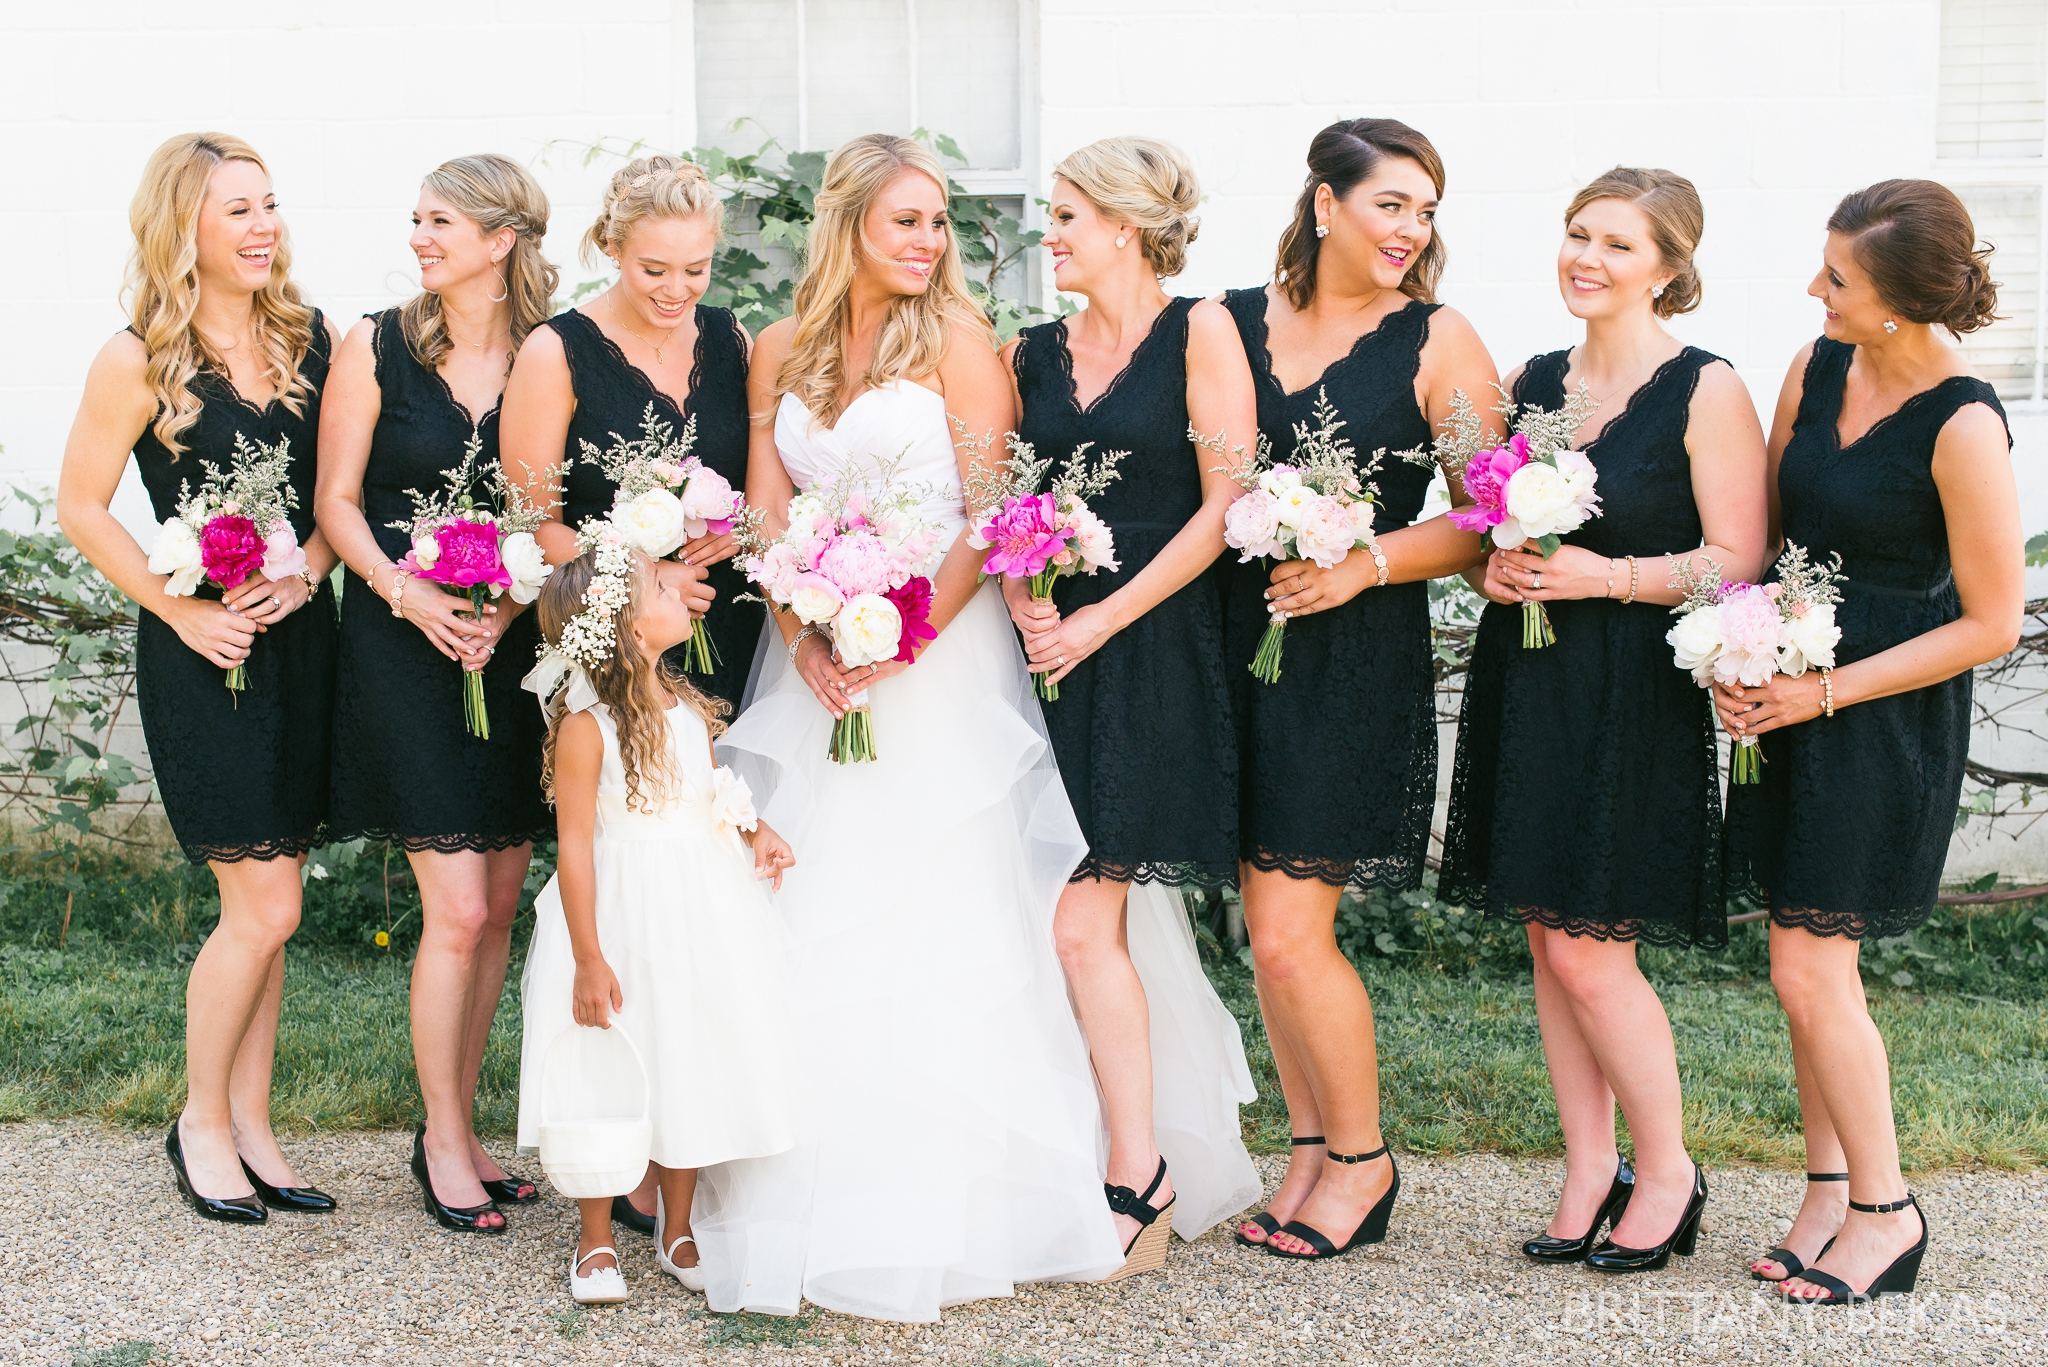 New Buffalo Wedding - Willow Harbor Vineyards Wedding Photos - Brittany Bekas Photography_0023